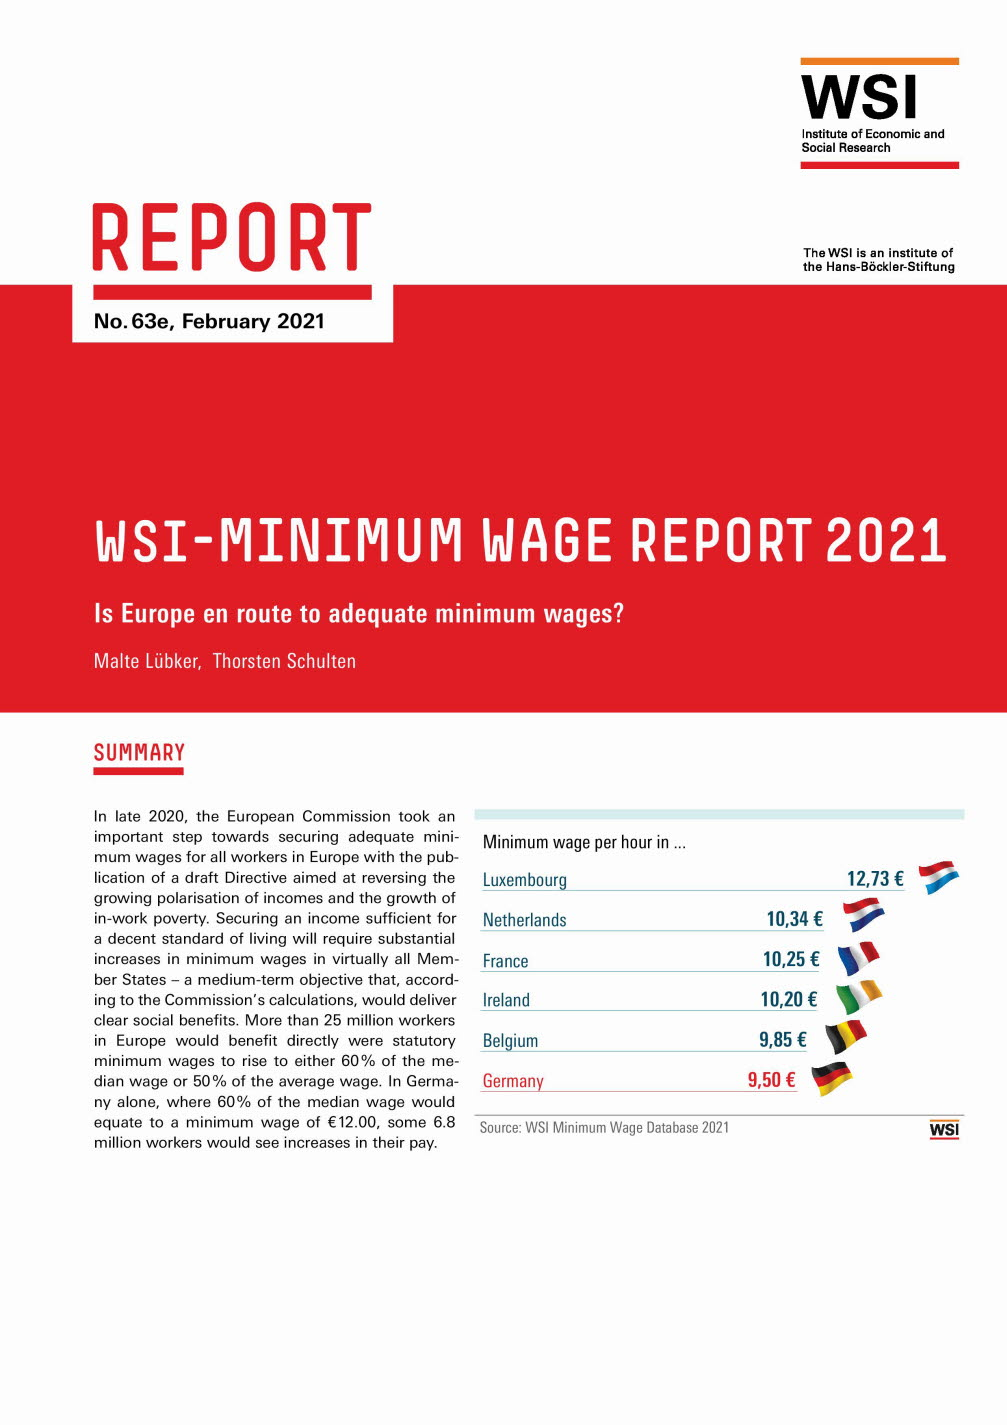 WSI-Minimum wage report 2021